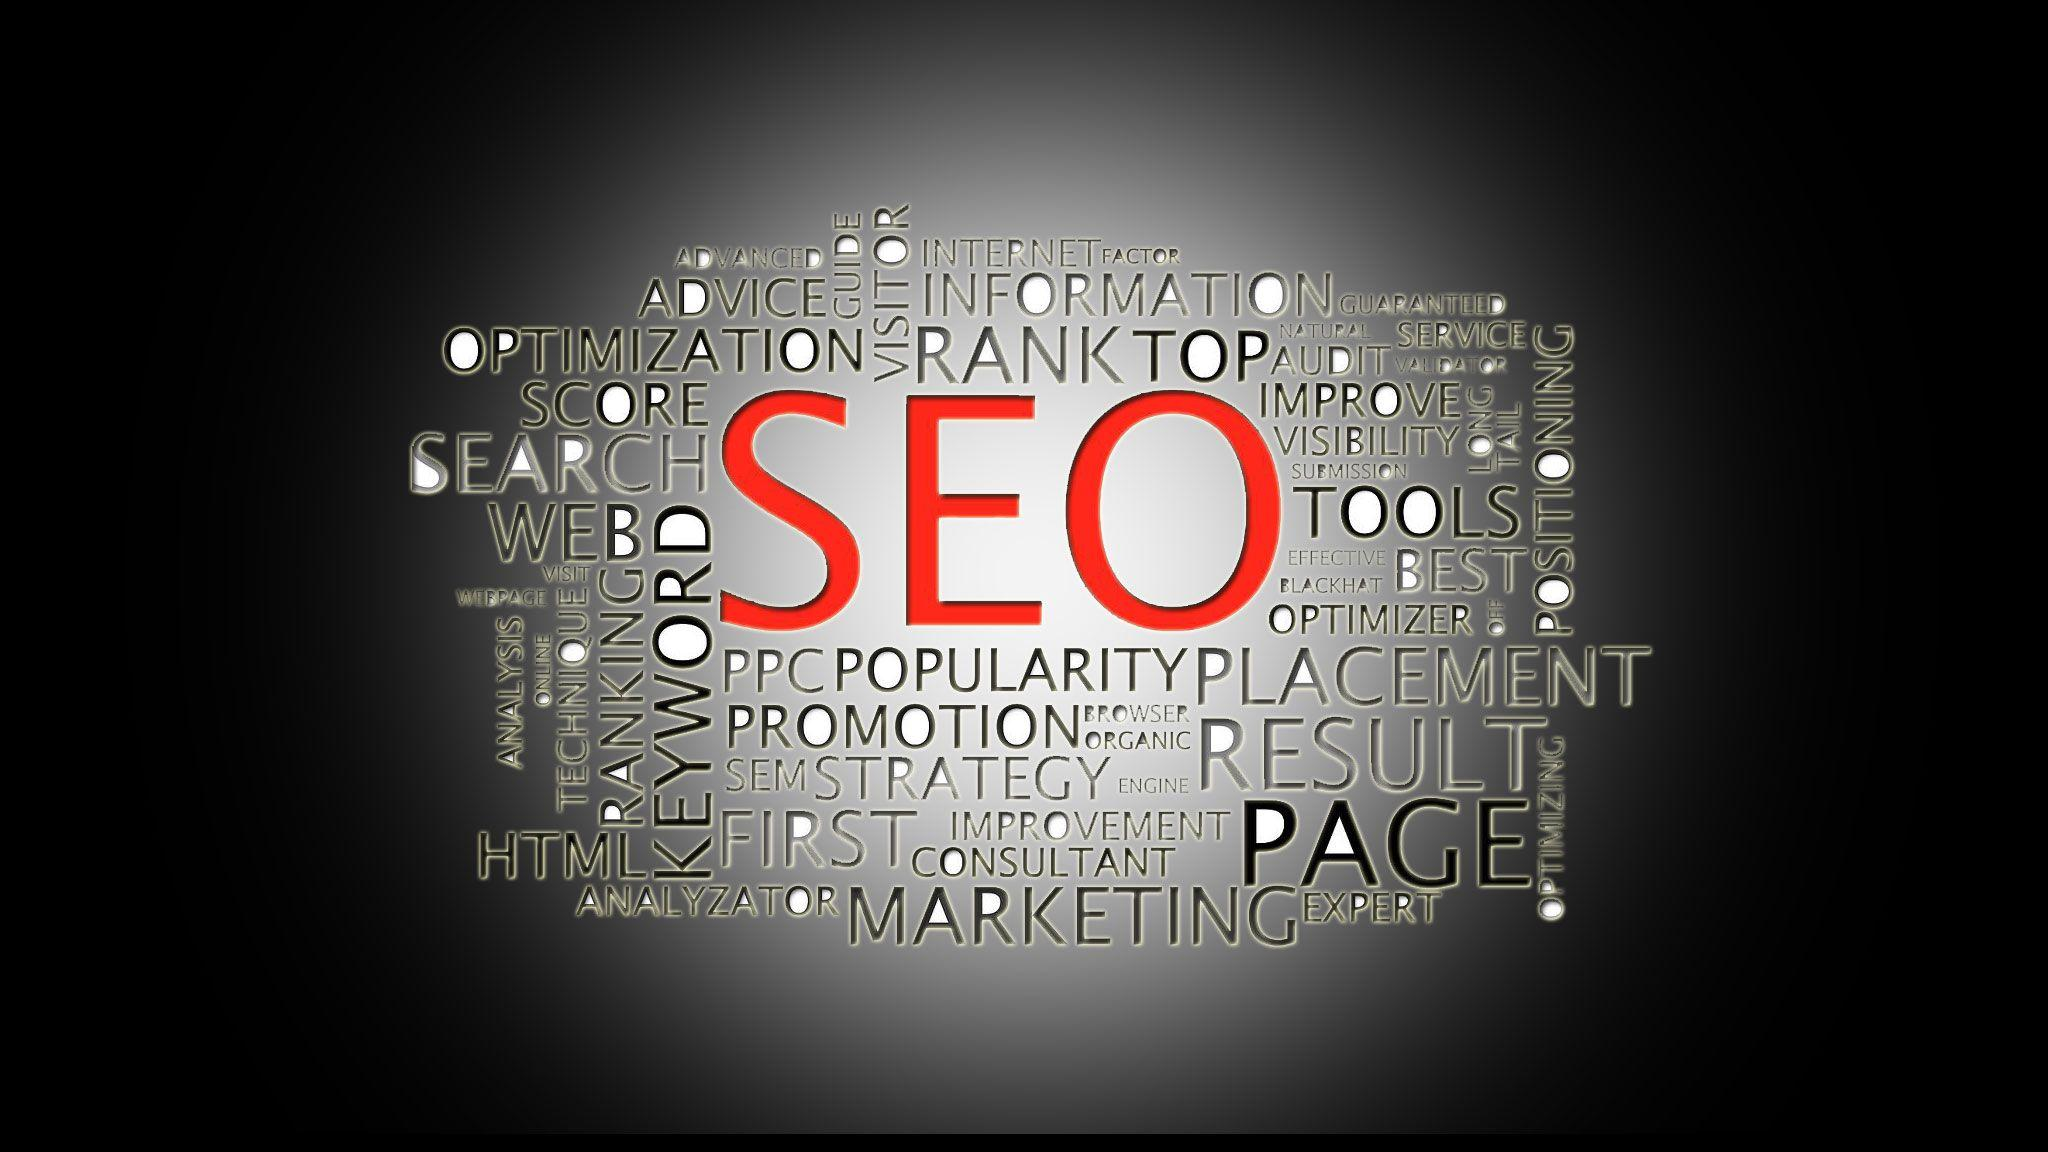 What Are The Easiest Way To Find Out The Affordable SEO Services?